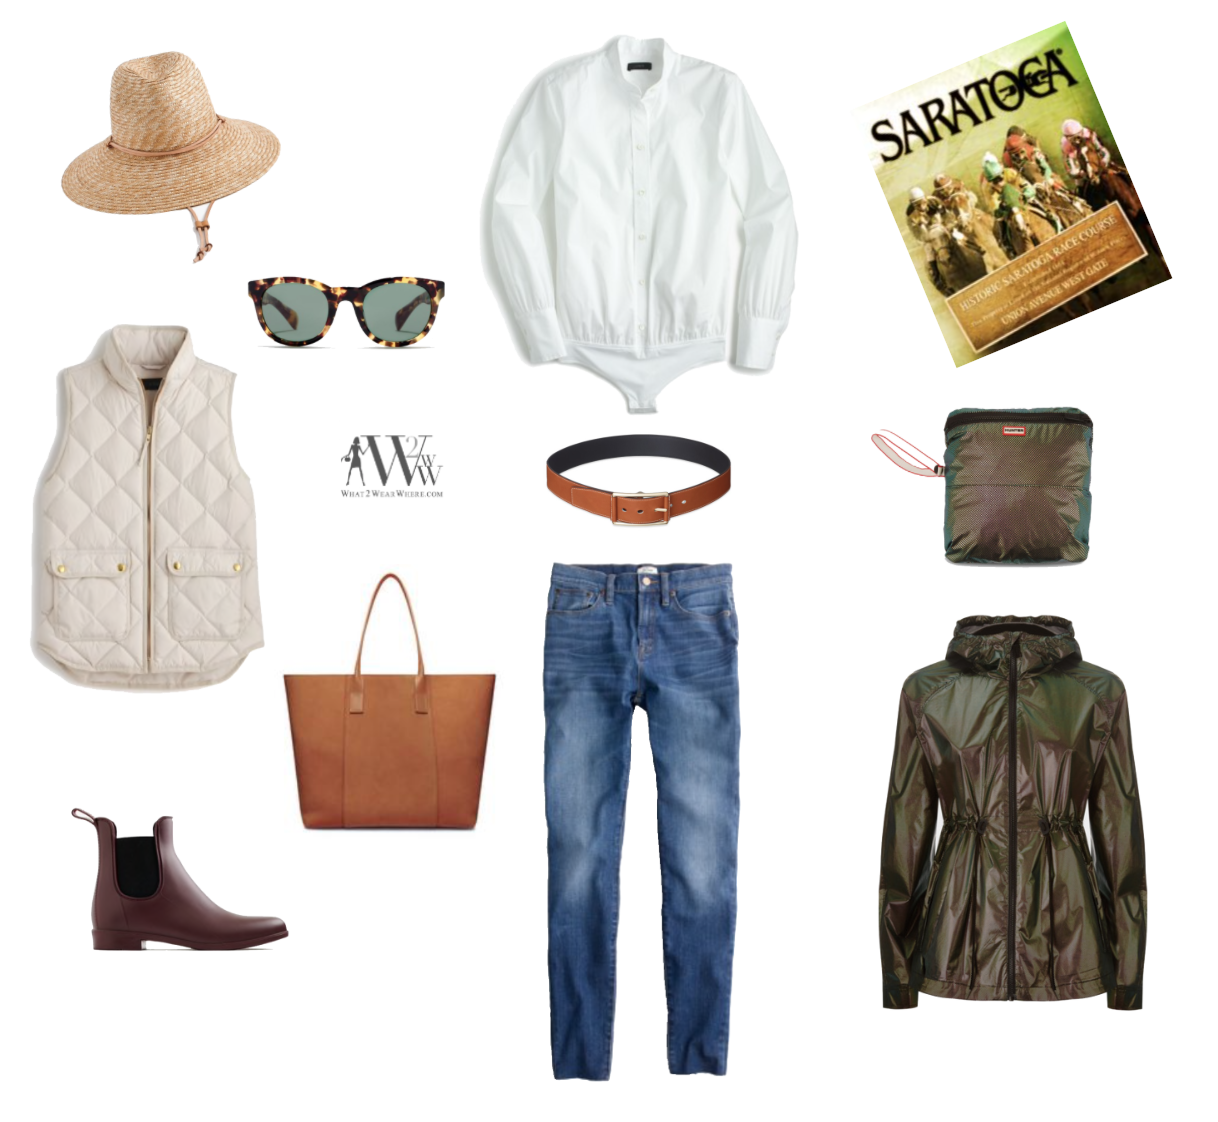 Karen Klopp and Hilary Dick article for New York Social Diary, New York Saratoga Springs what to wear